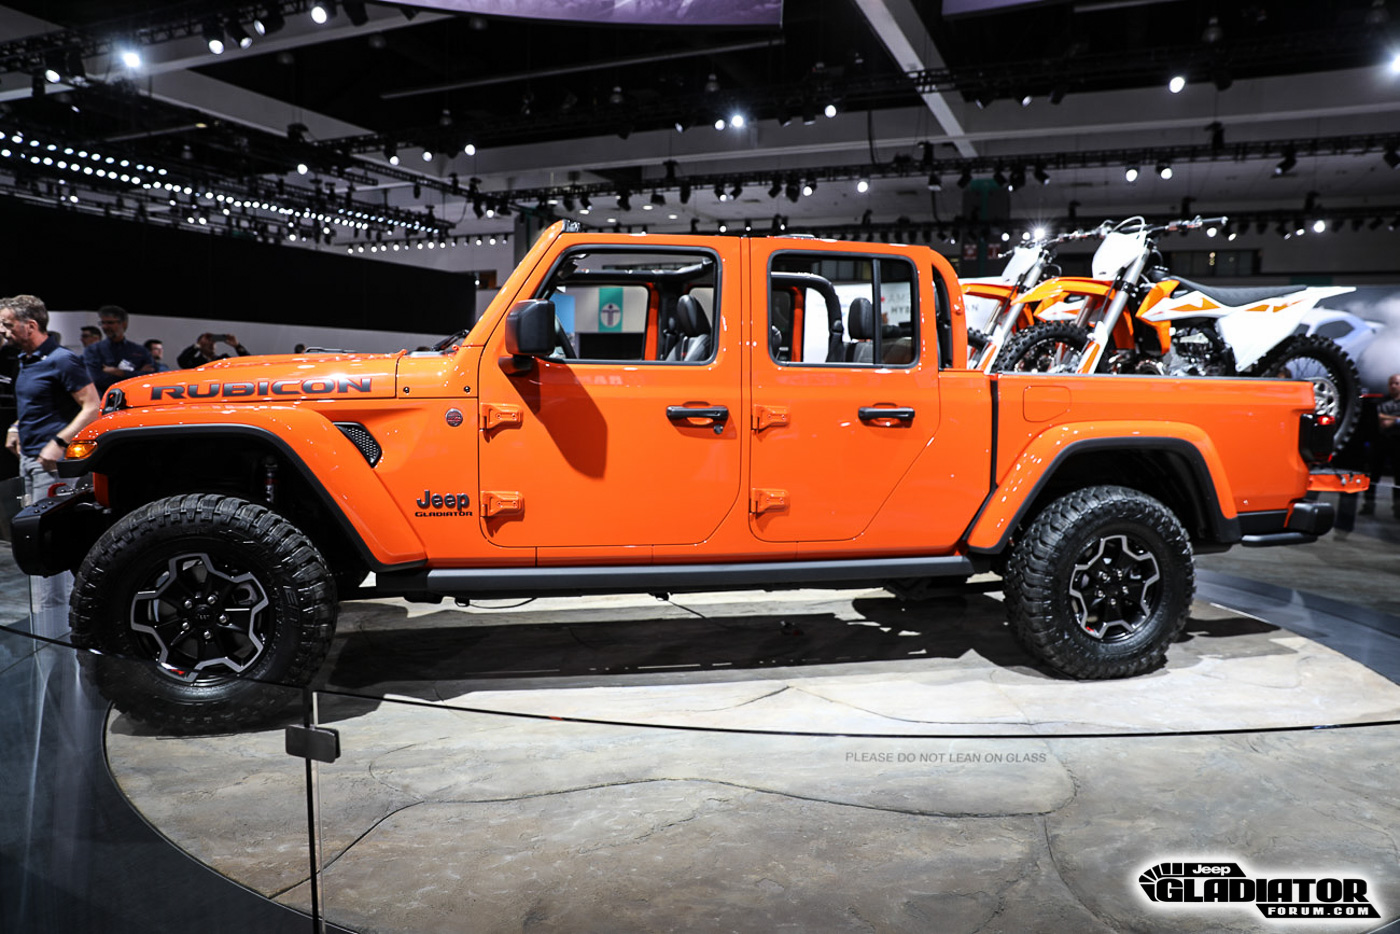 What We Saw and Learned About the Jeep Gladiator at Its ...